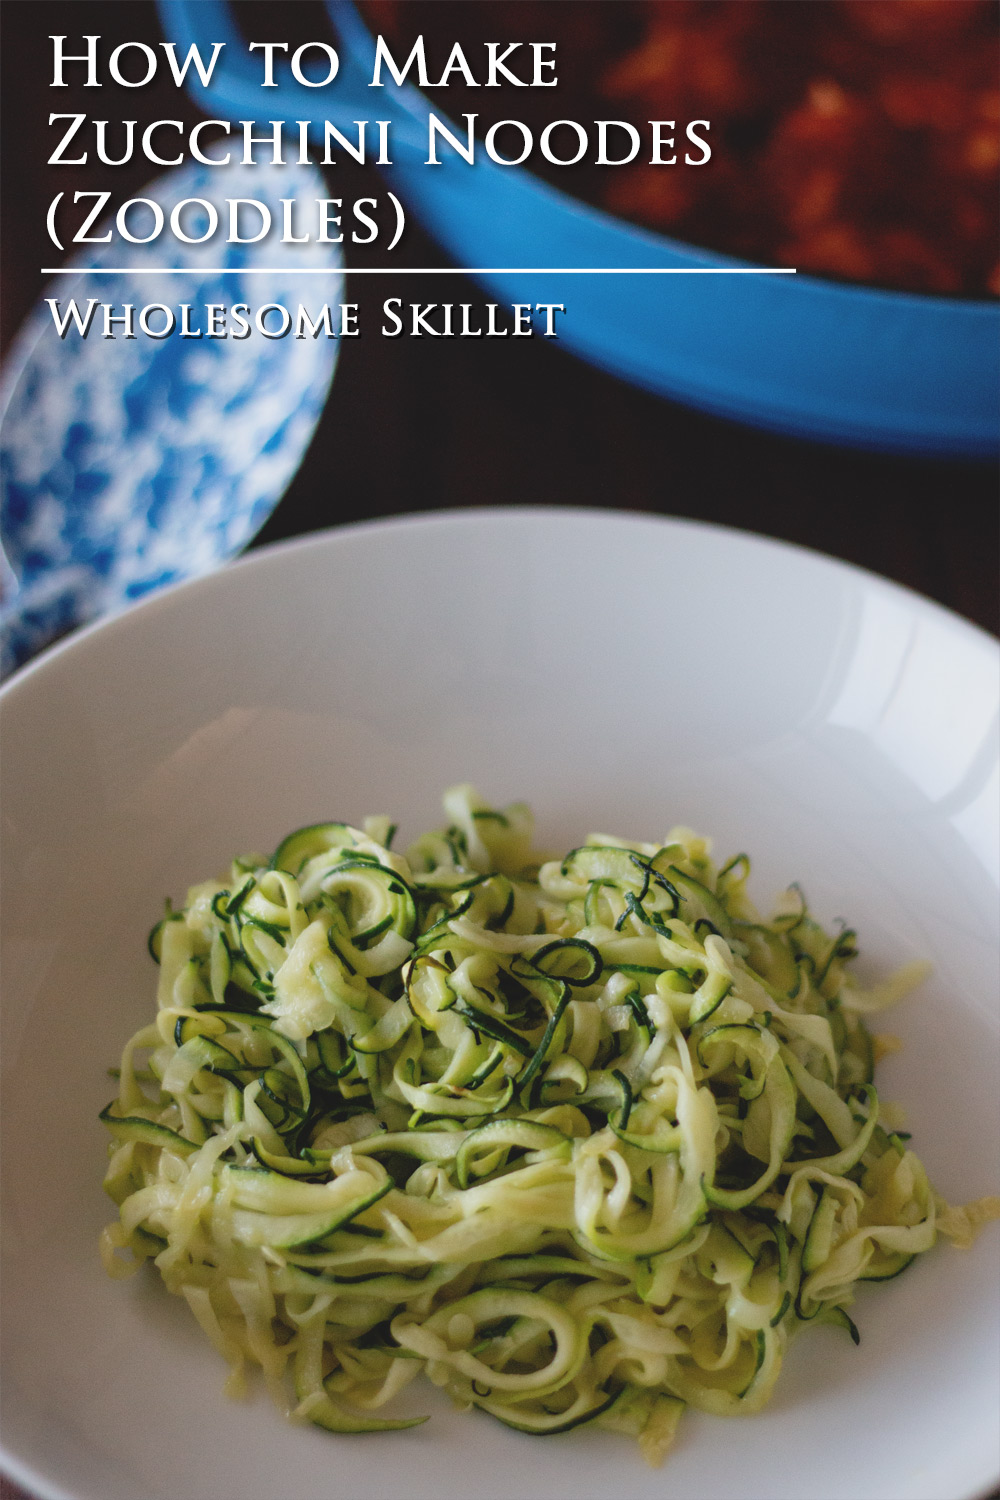 How to Make Noodles from Zucchini (Zoodles)